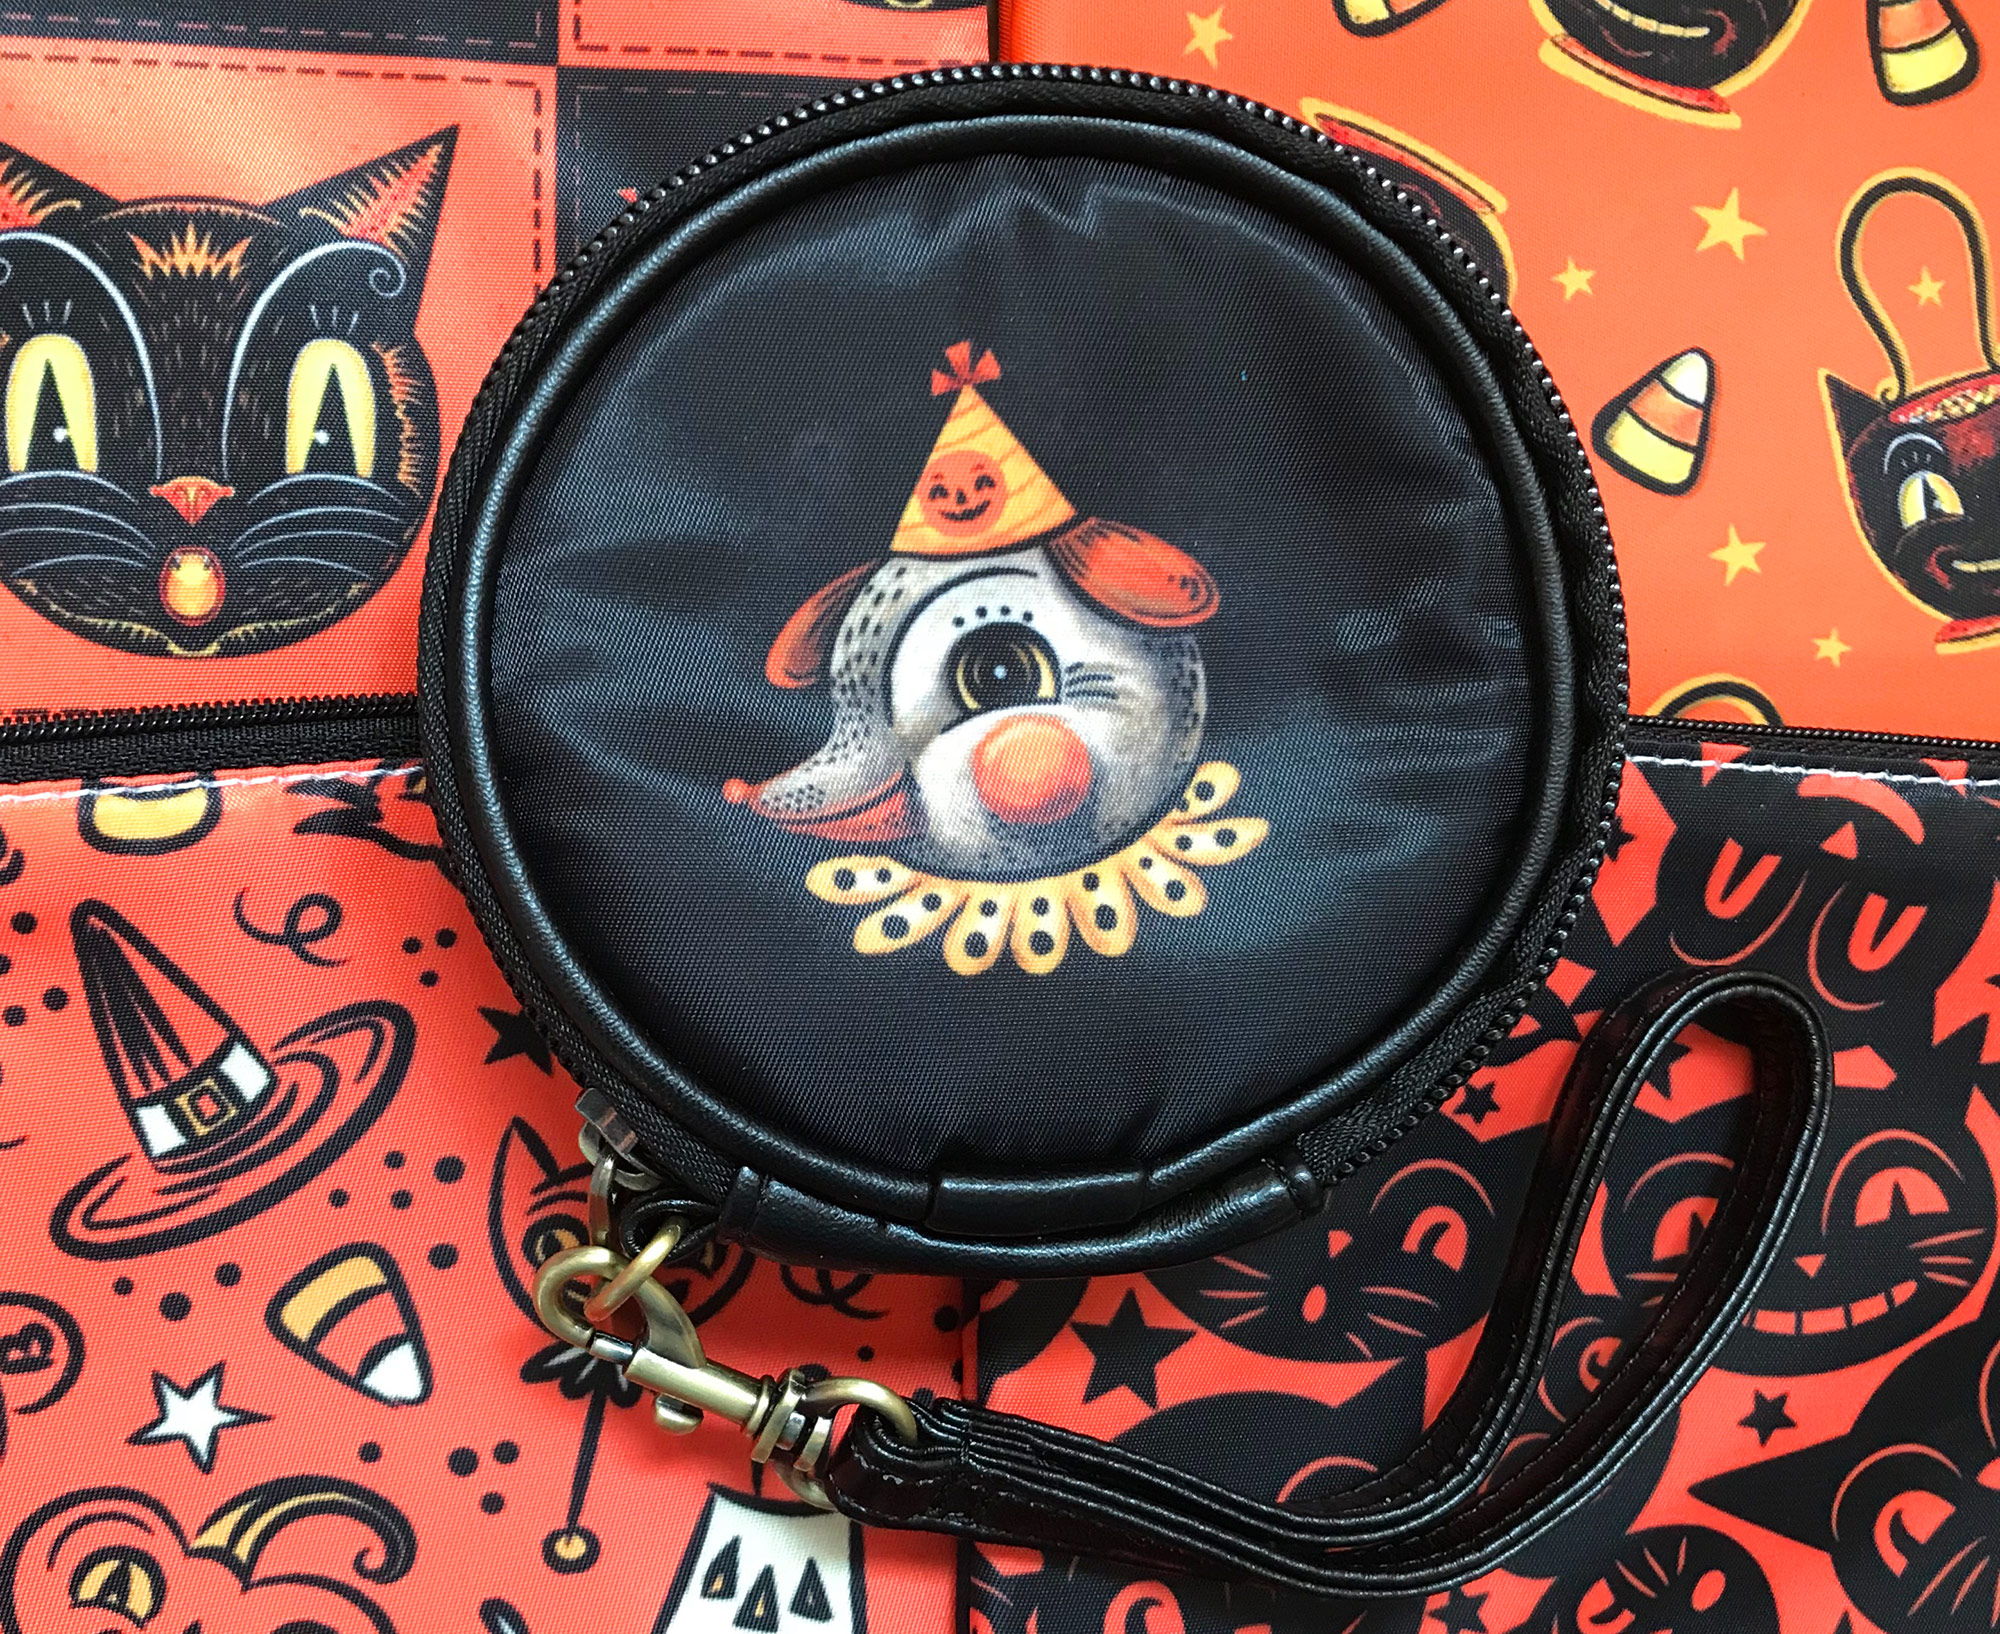 Double-sided round zipper pouches feature different faces from Johanna's family of illustrated characters. Fill with your makeup essentials, coins or whatever you wish!